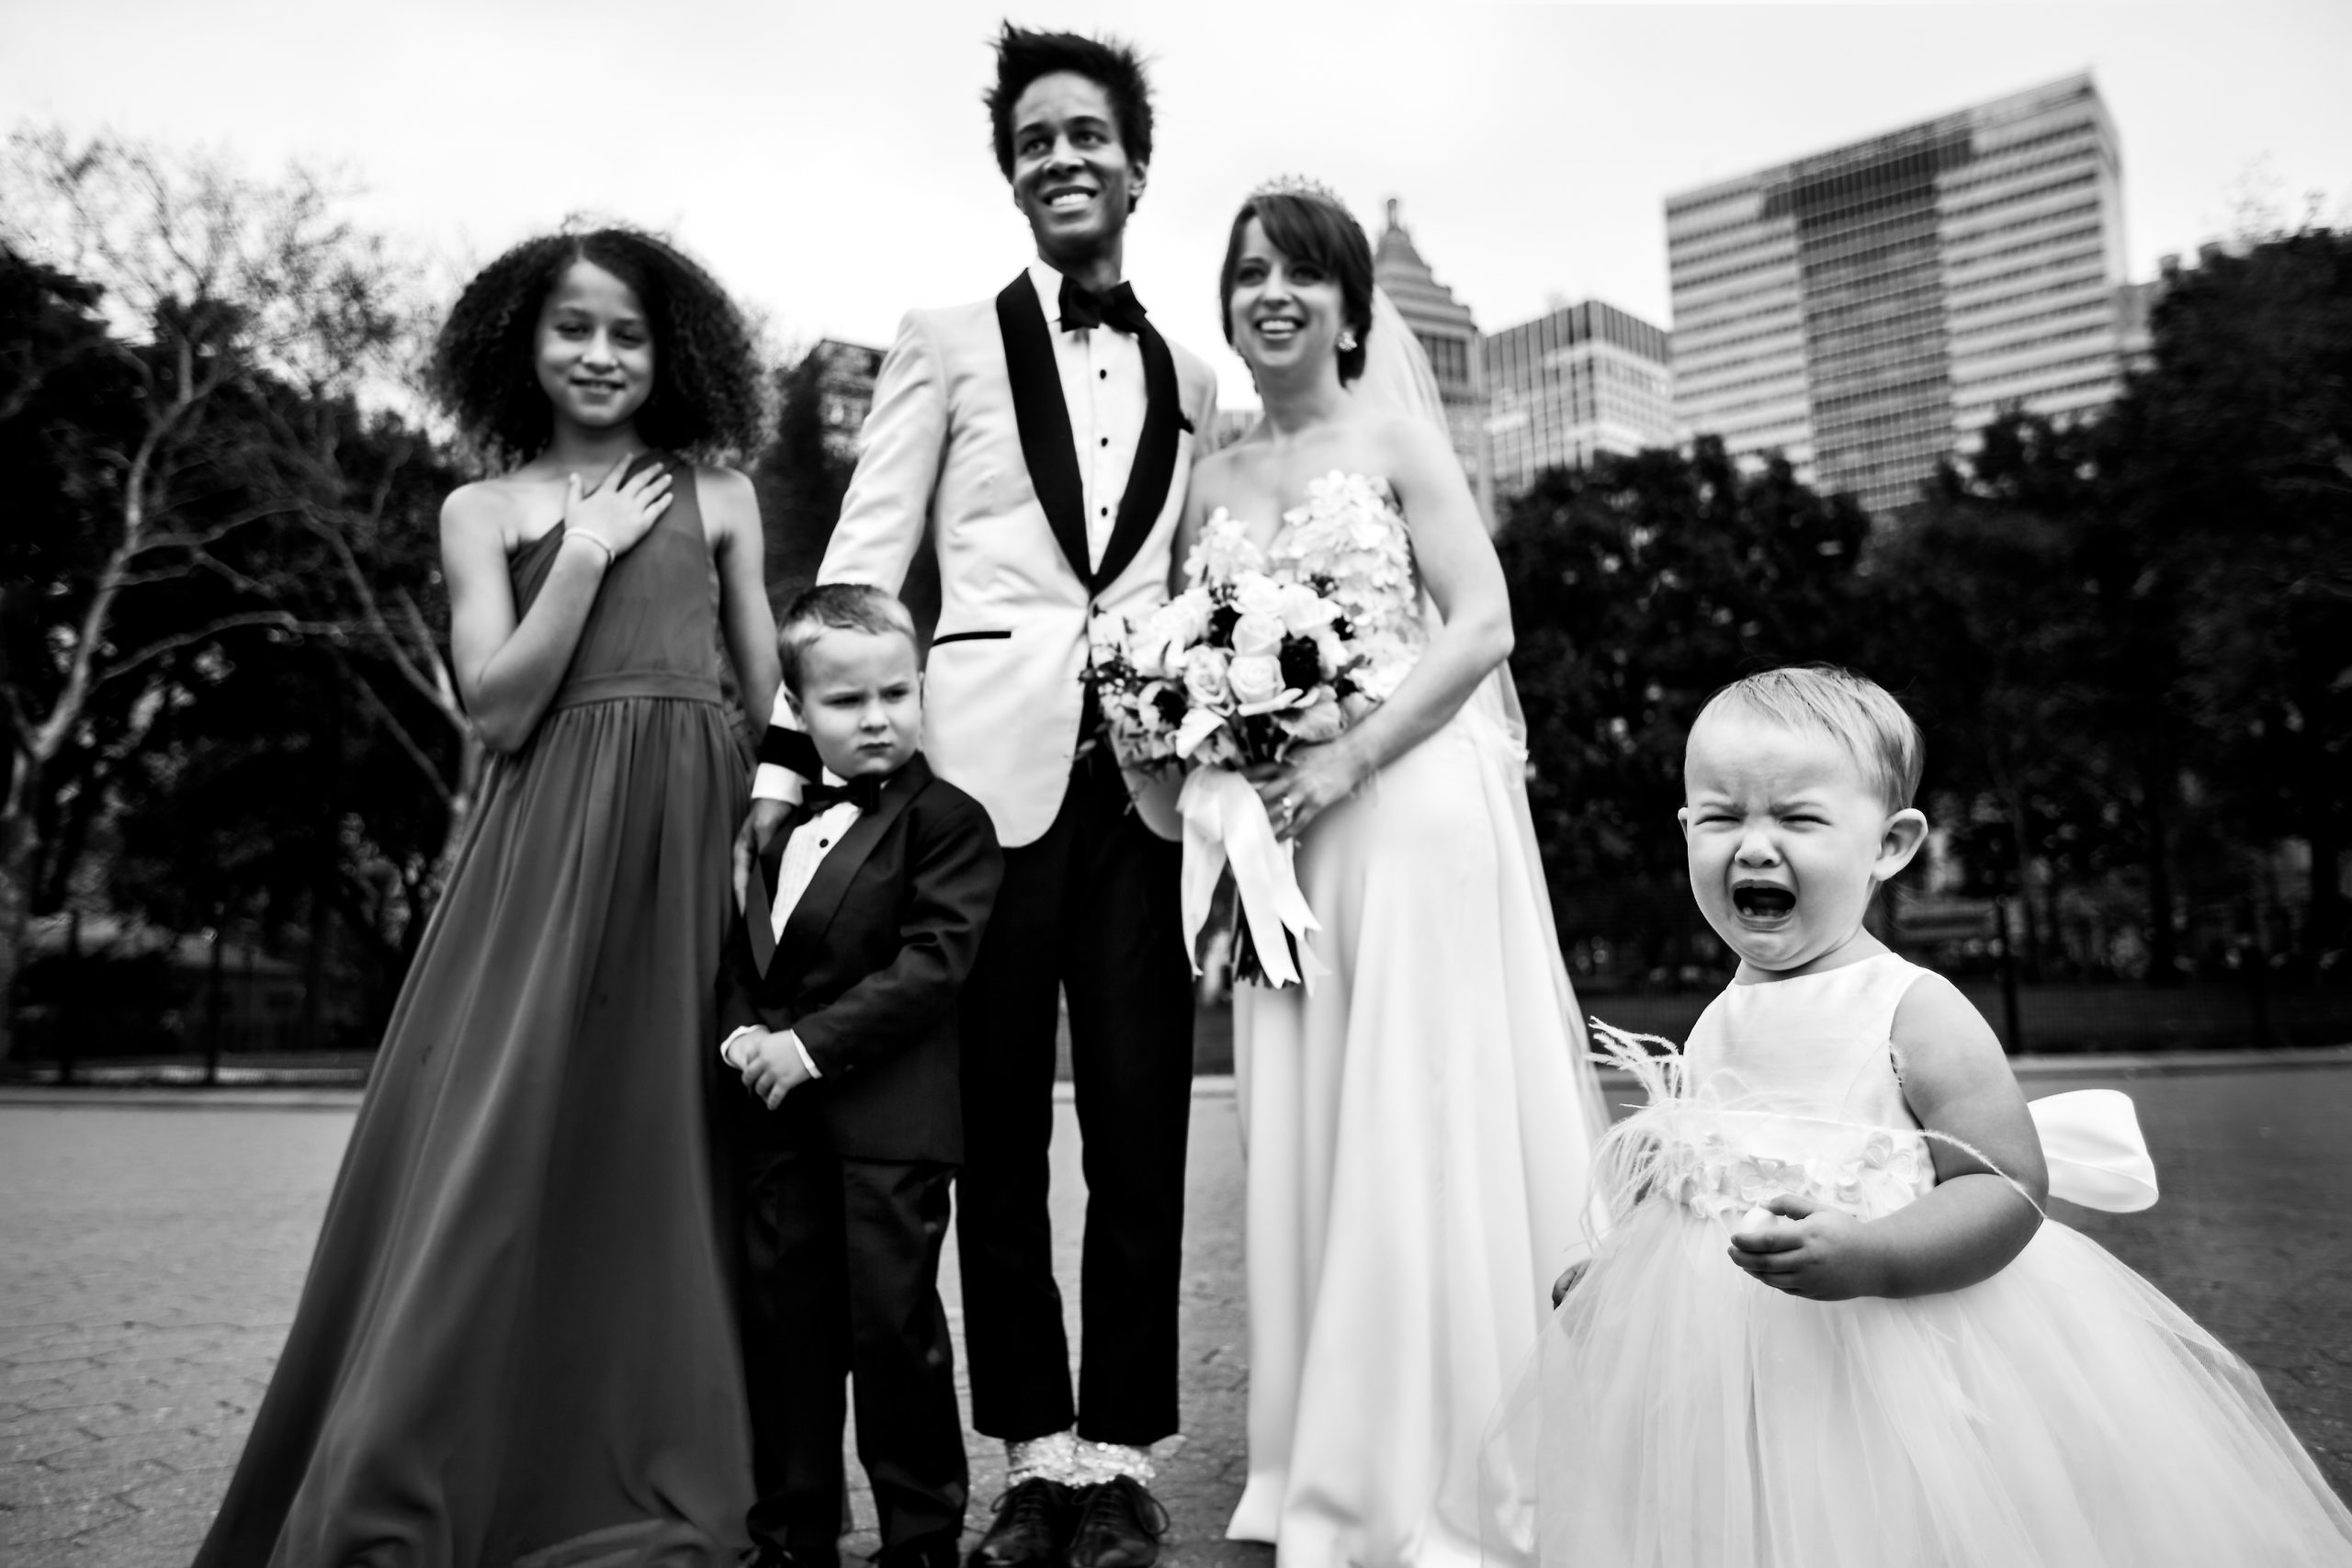 Newlyweds and kids pose for picture while a young girl cries